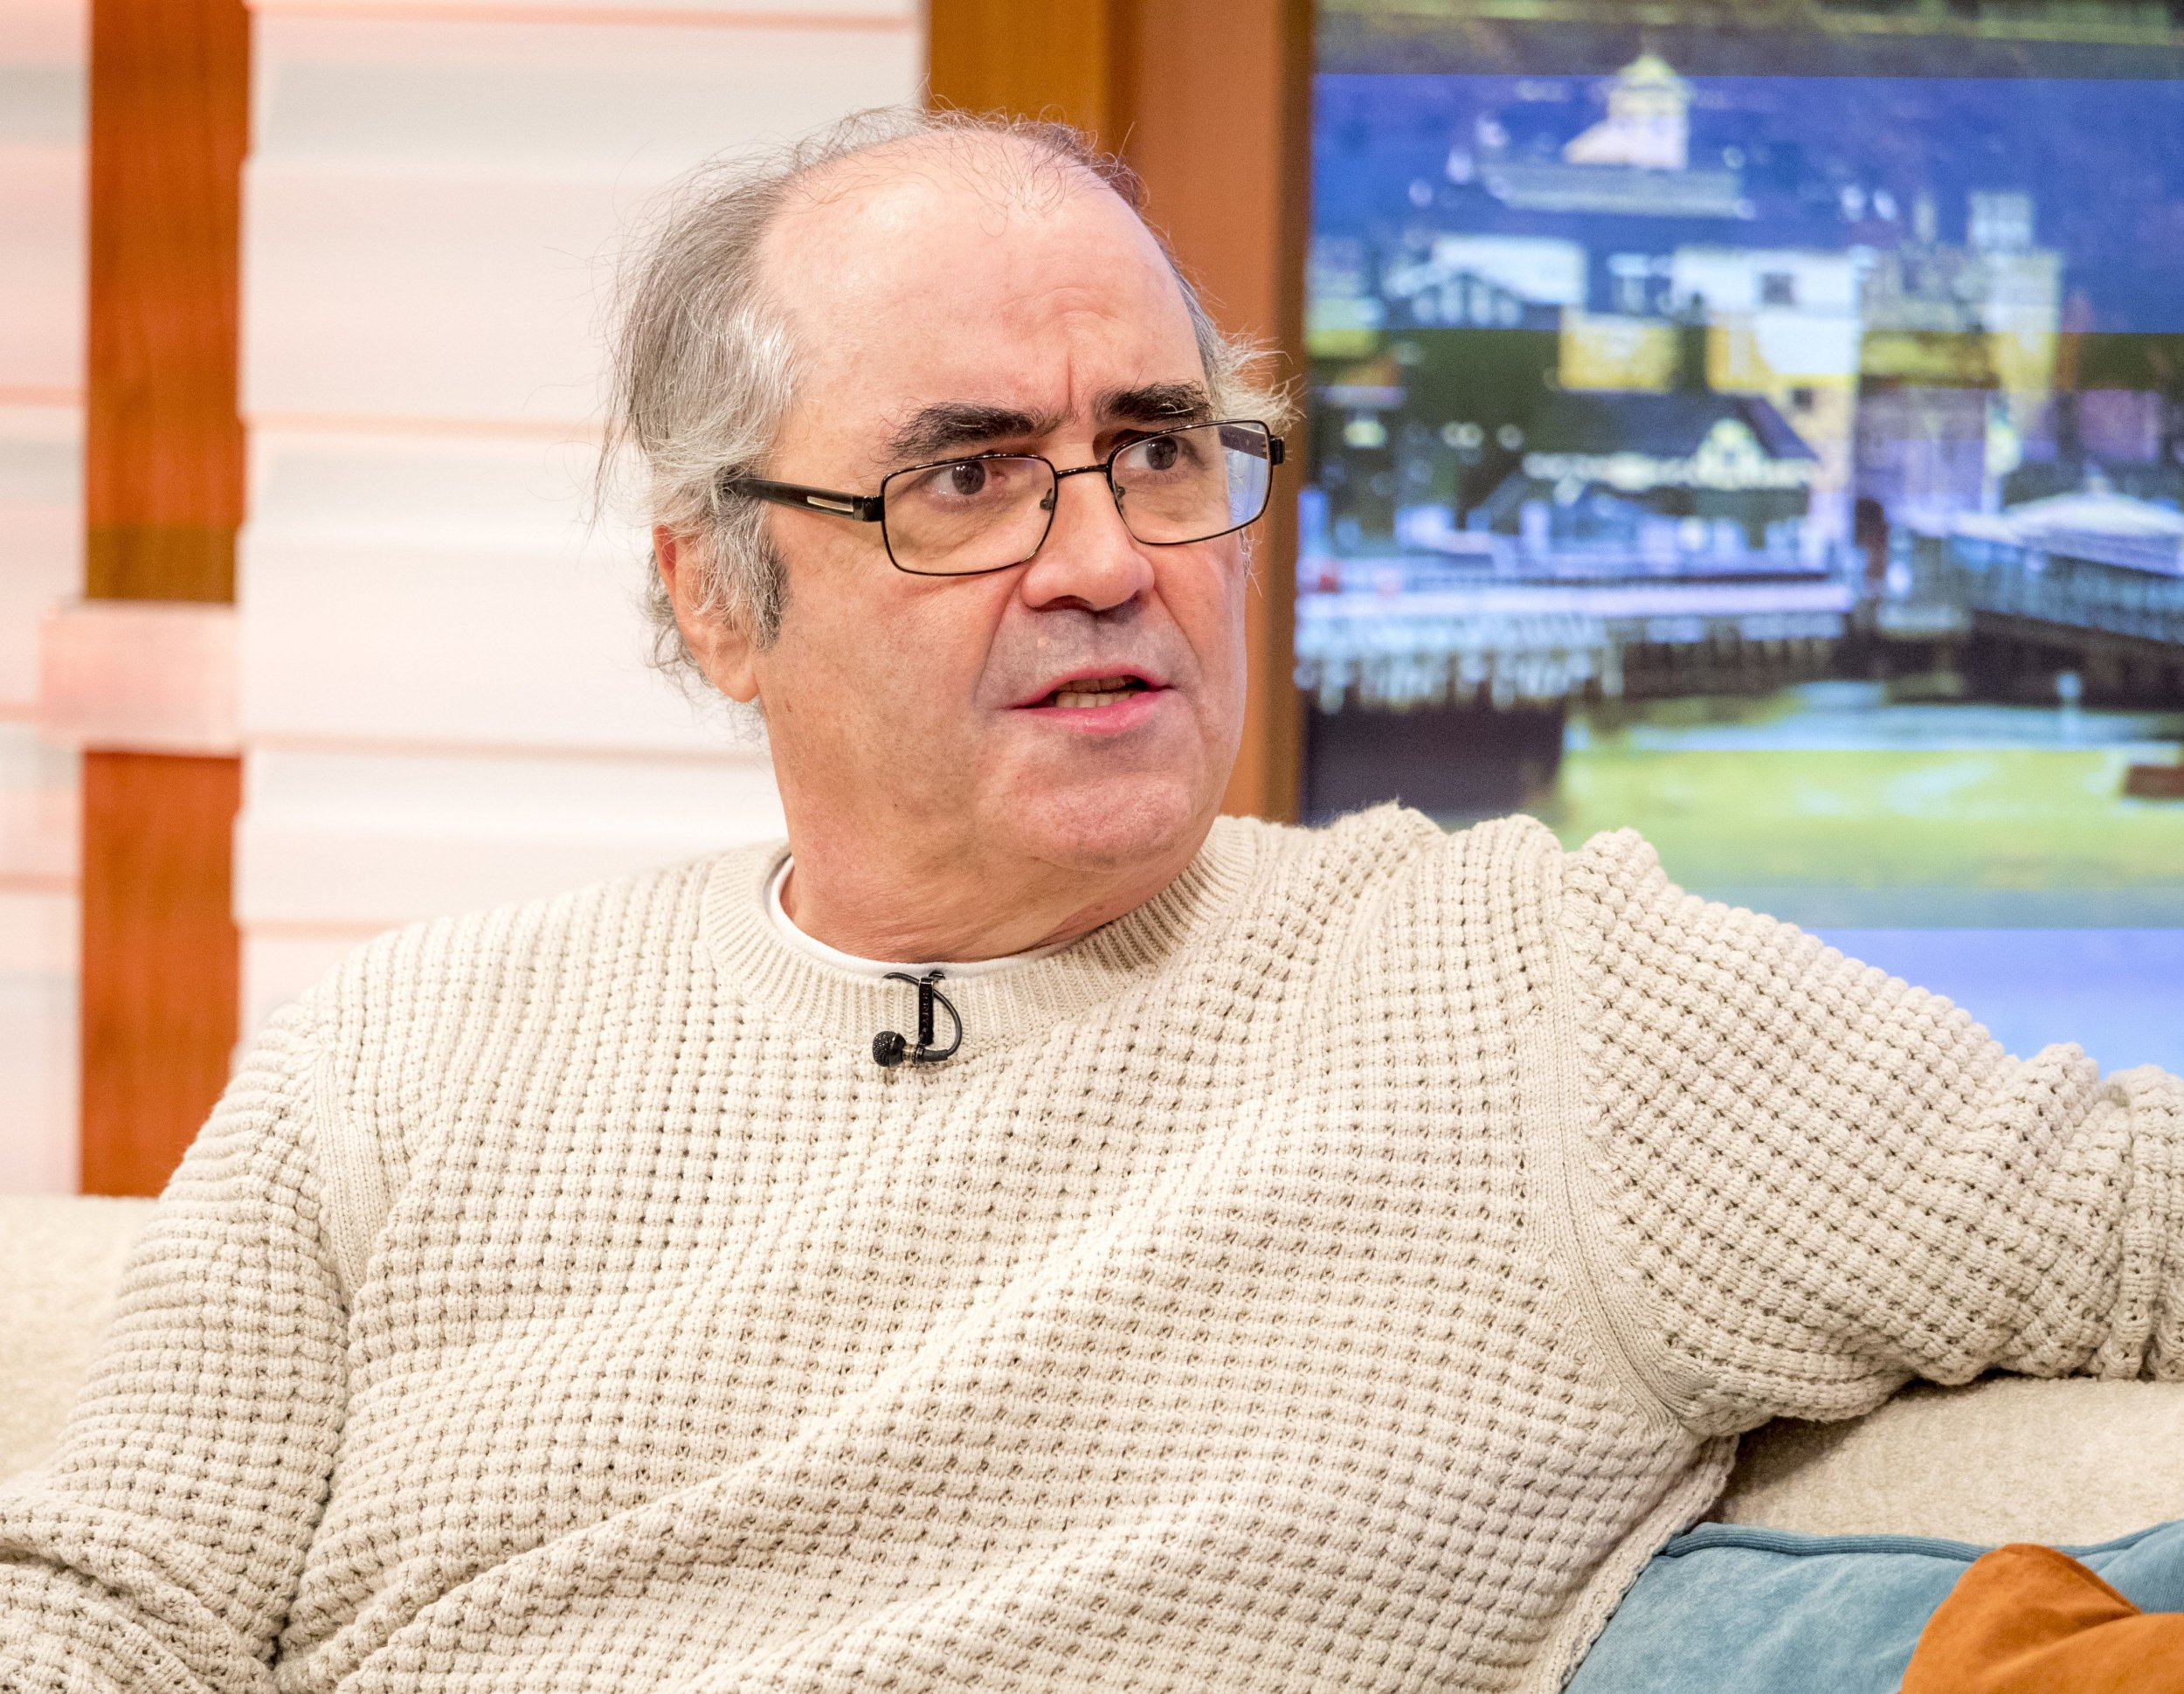 Danny Baker accuses BBC of 'throwing him under the bus' after being sacked over Royal Baby tweet